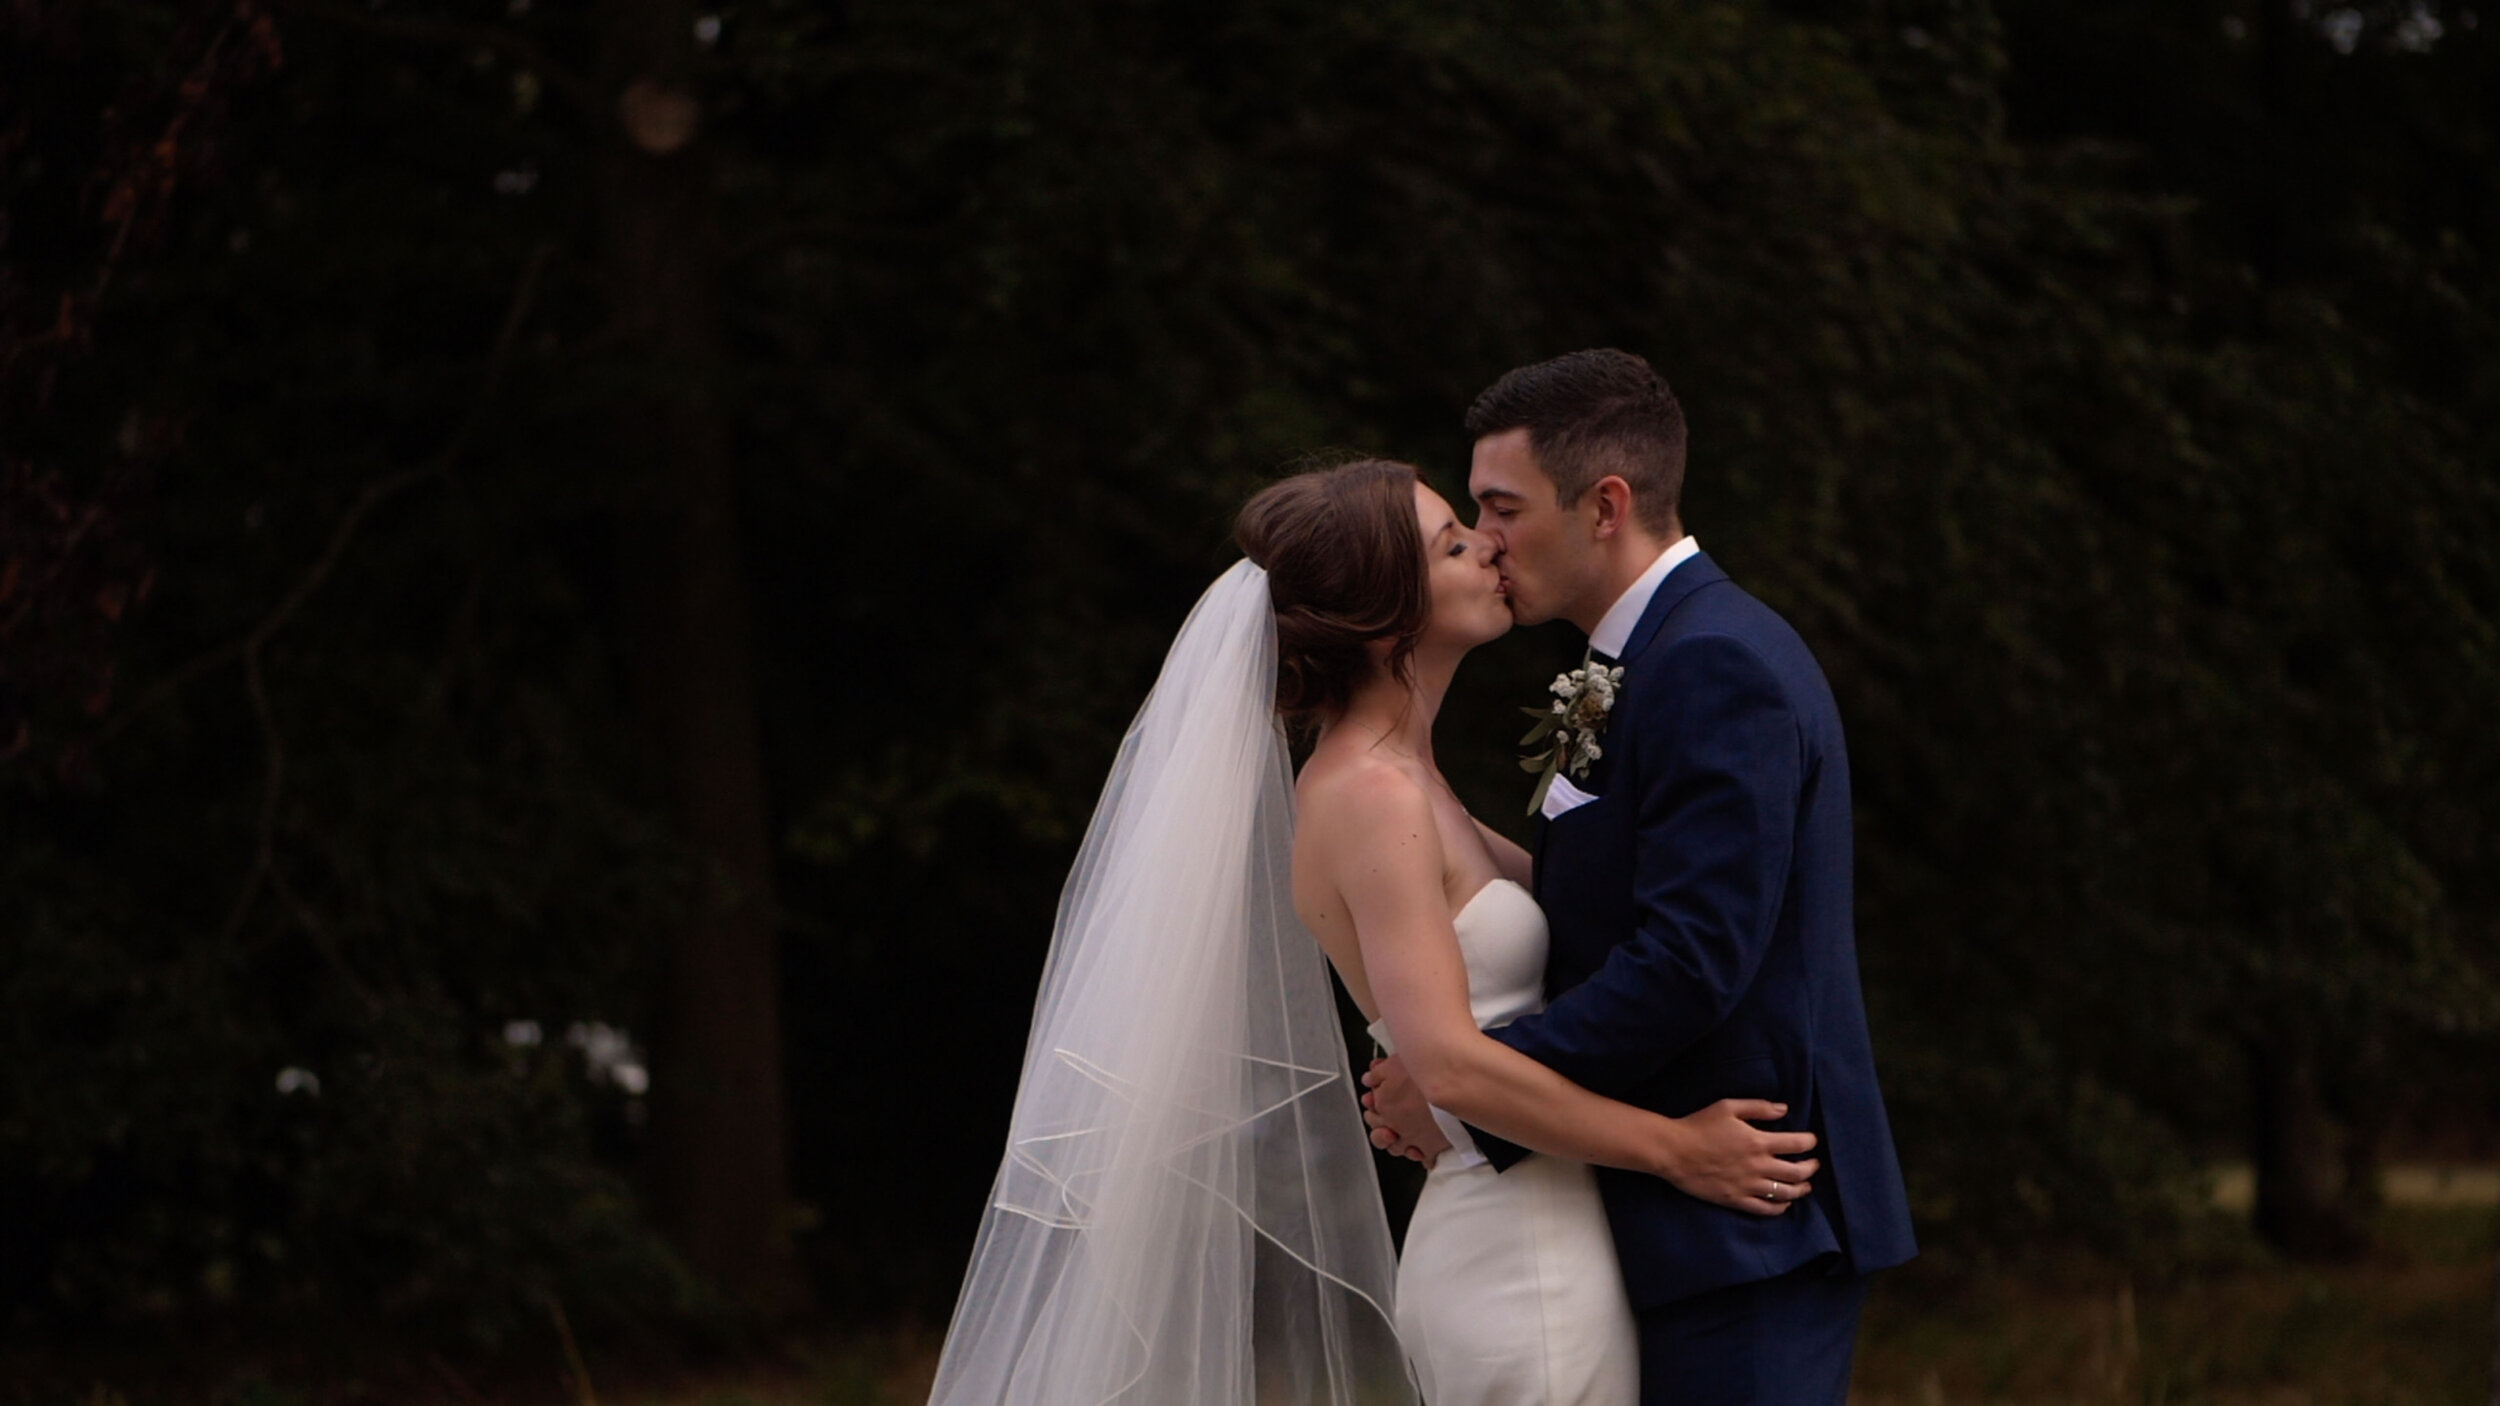 Josh and Hannah share a kiss in front of a beautiful woodland in the North West of England.